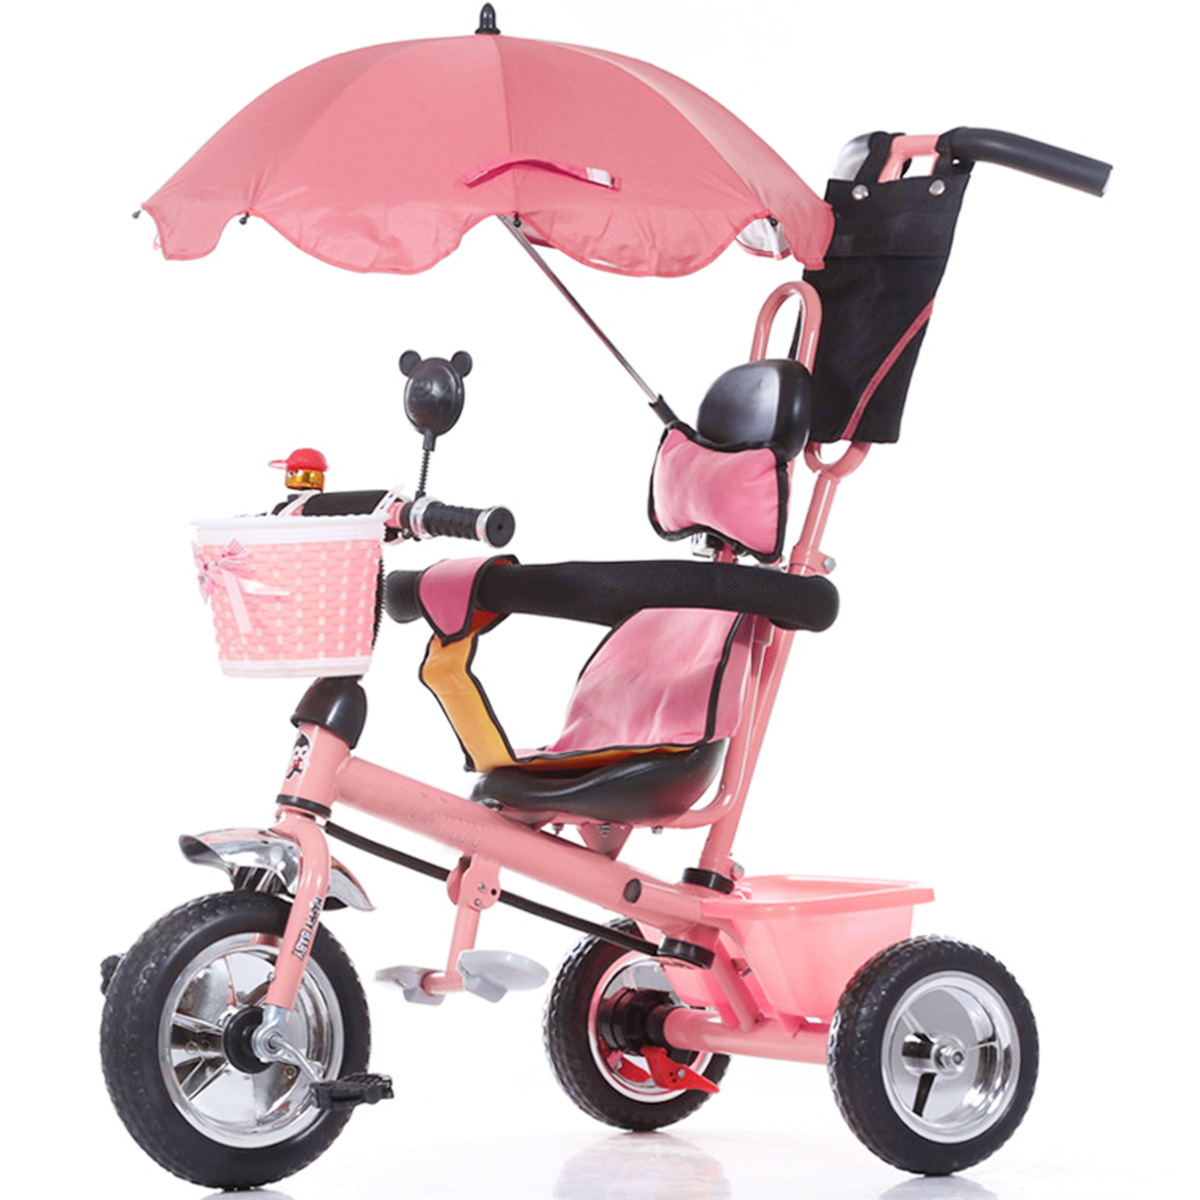 Baby Pram Umbrella Adjustable Baby Pram Pushchair Buggy Stroller Umbrella Sunshade Parasol Brolly Sun Canopy